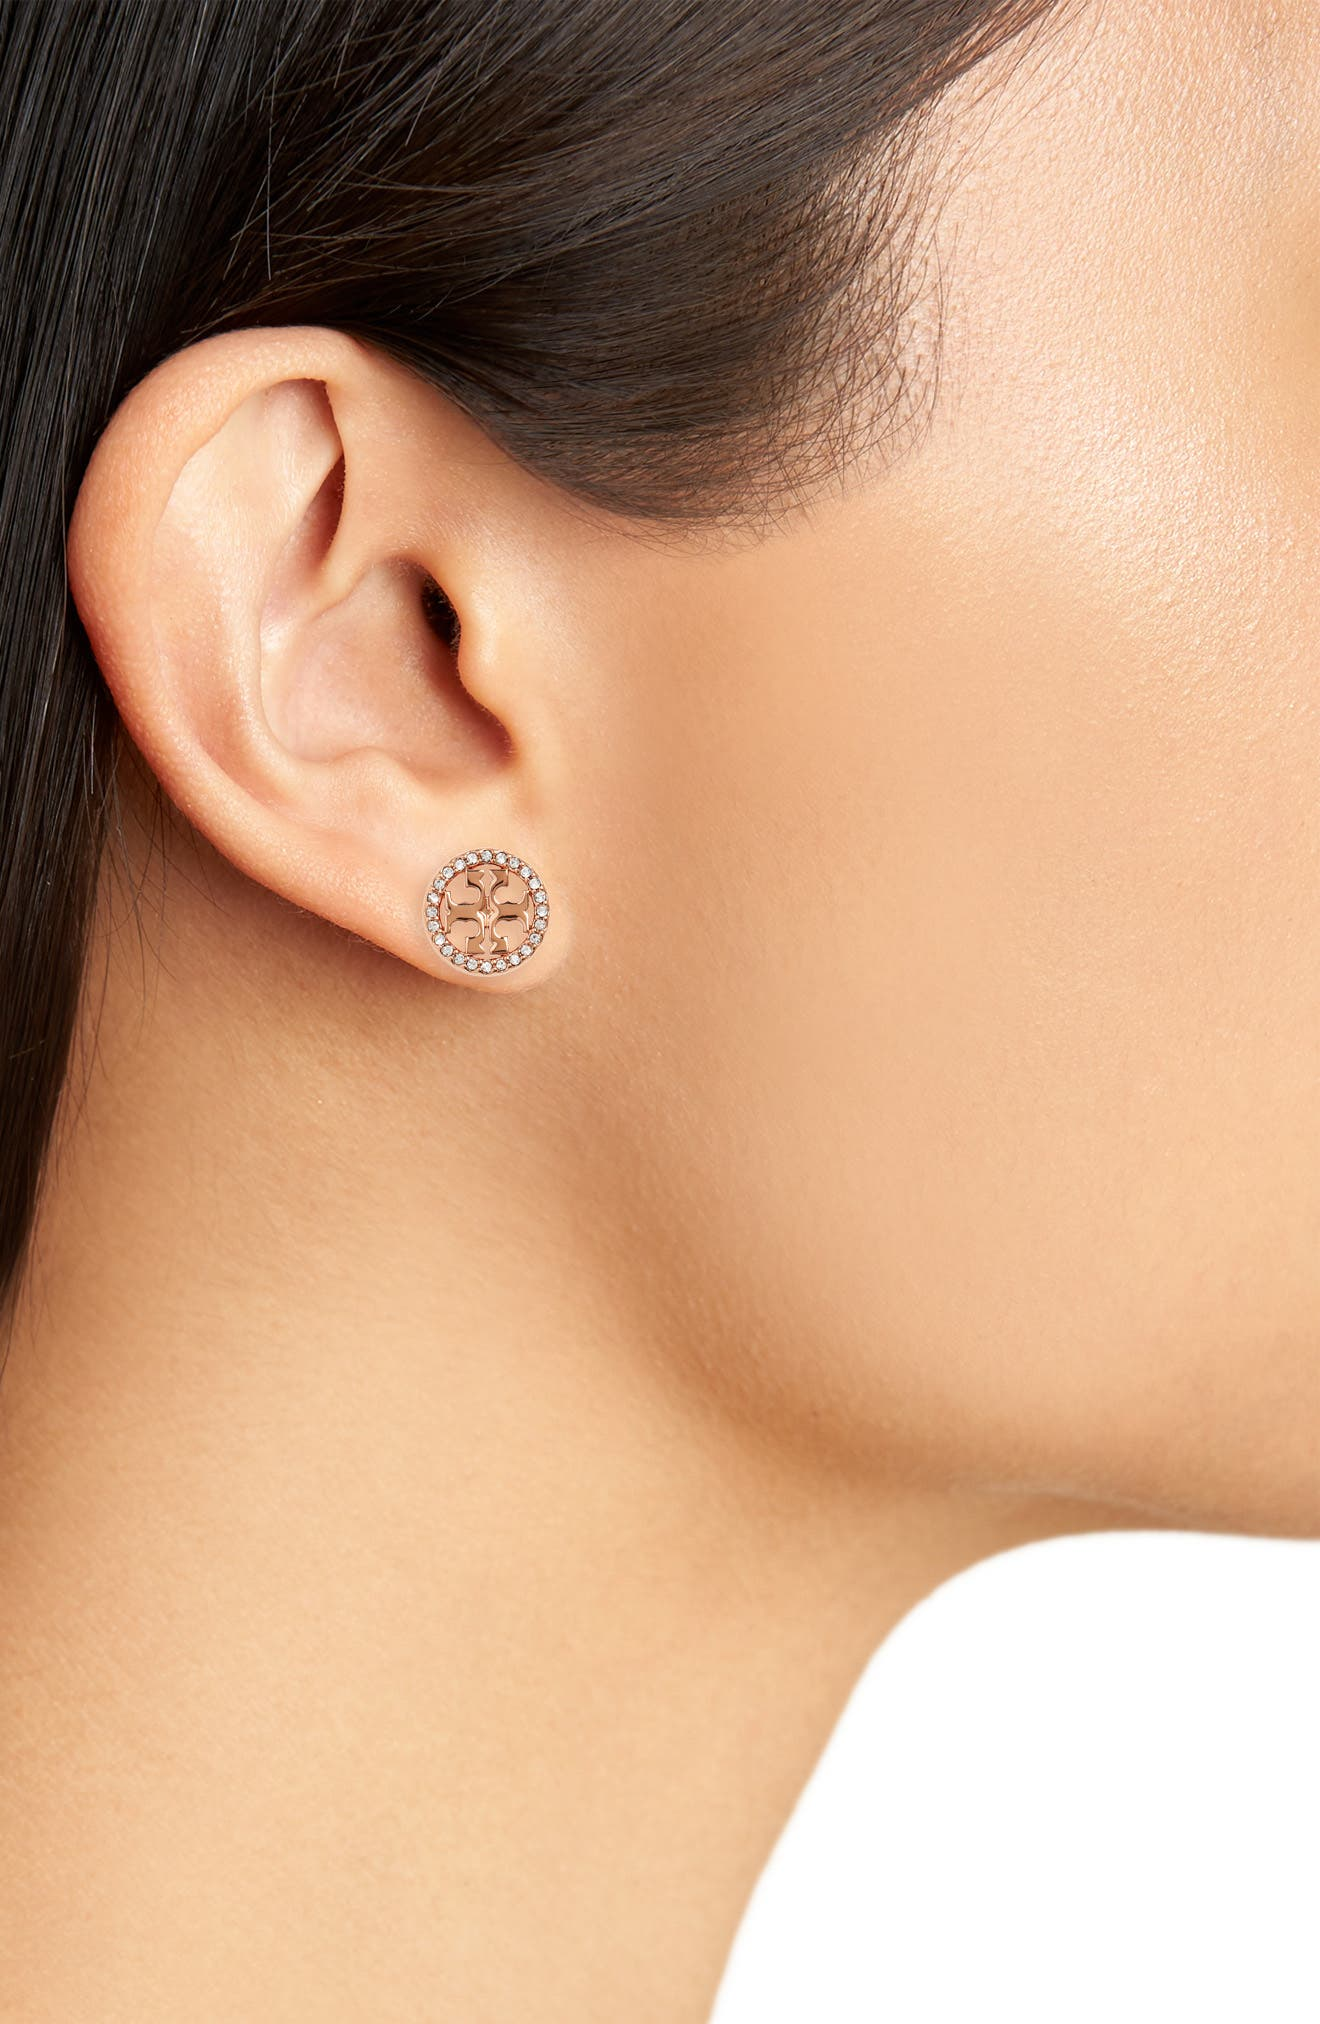 TORY BURCH, Crystal Logo Circle Stud Earrings, Alternate thumbnail 2, color, ROSE GOLD/ CRYSTAL